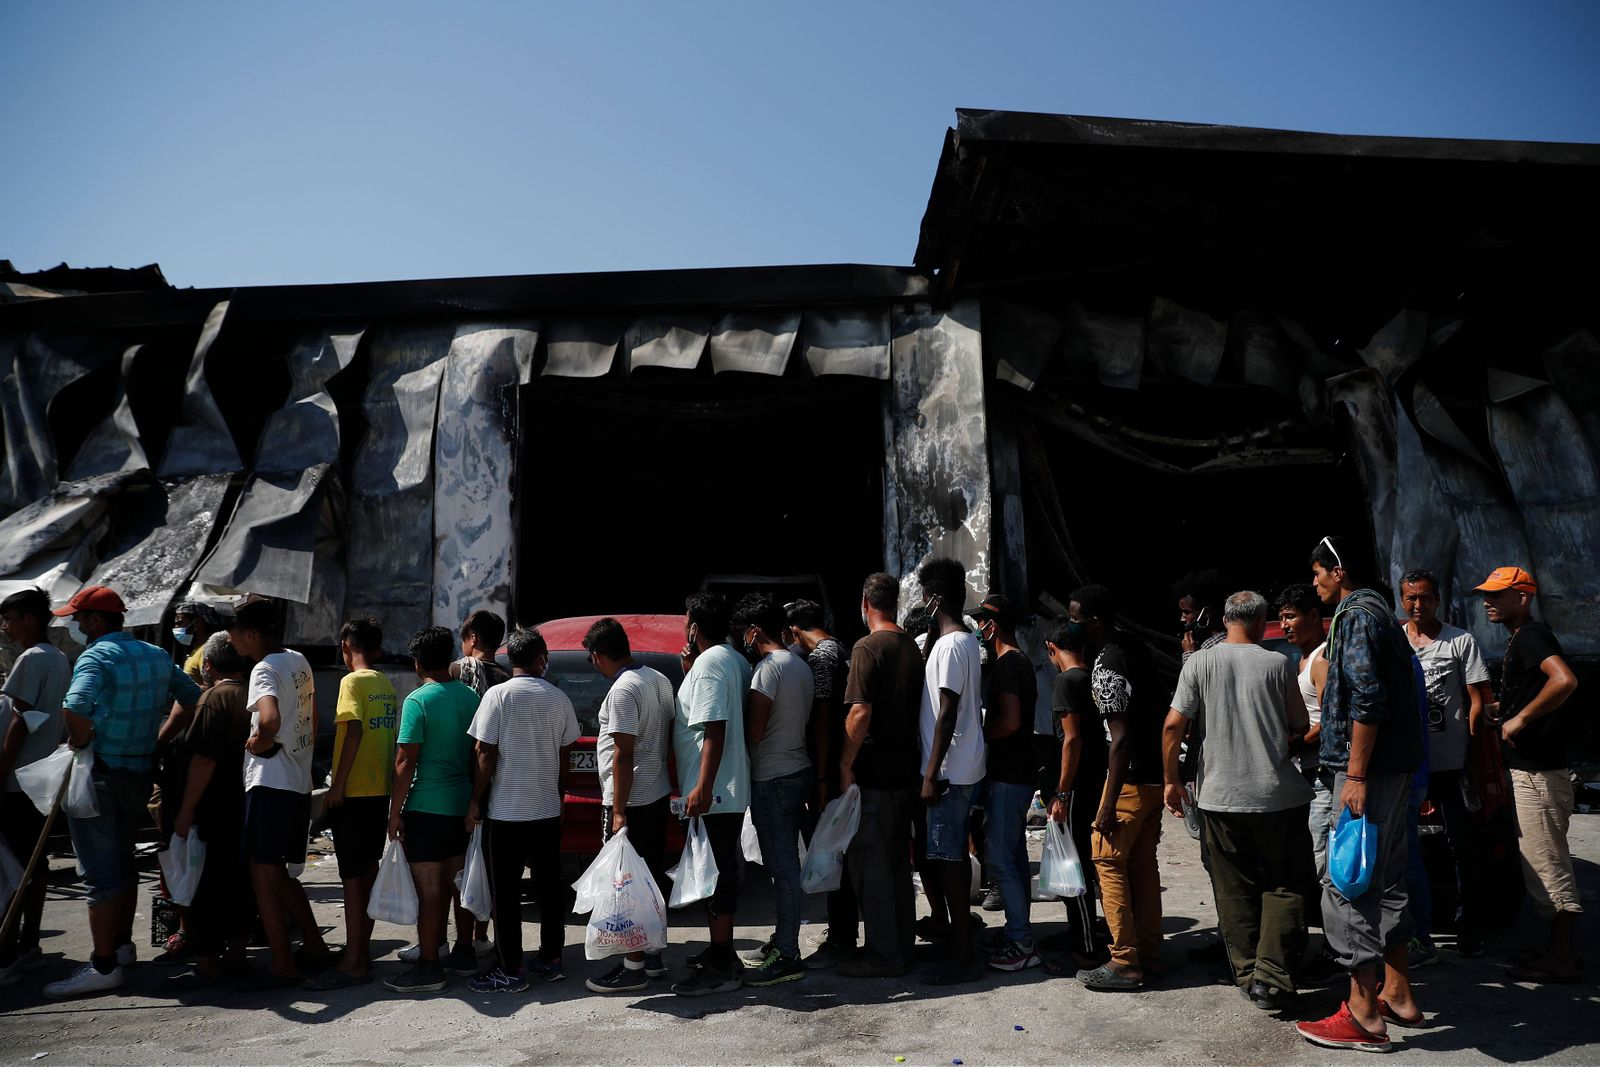 Aftermath of fire at Moria refugee camp, Mytilene, Greece - 16 Sep 2020